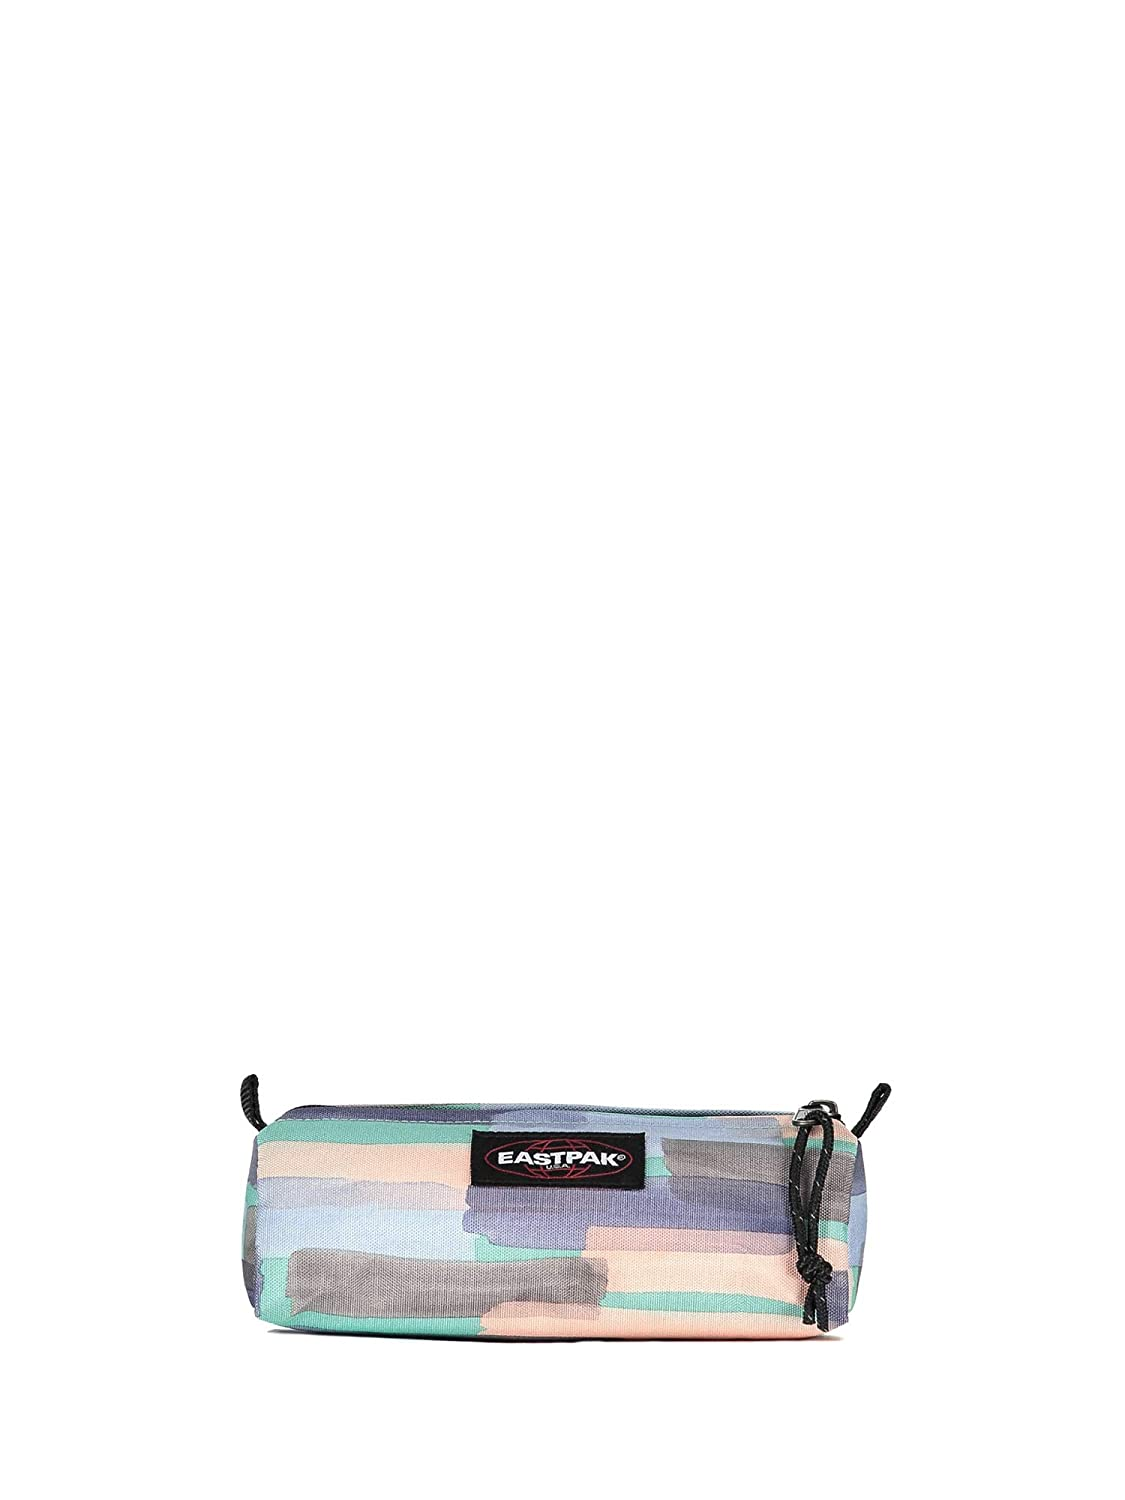 Eastpak EK372 Estuche Accesorios Multicolor Pz.: Amazon.es ...